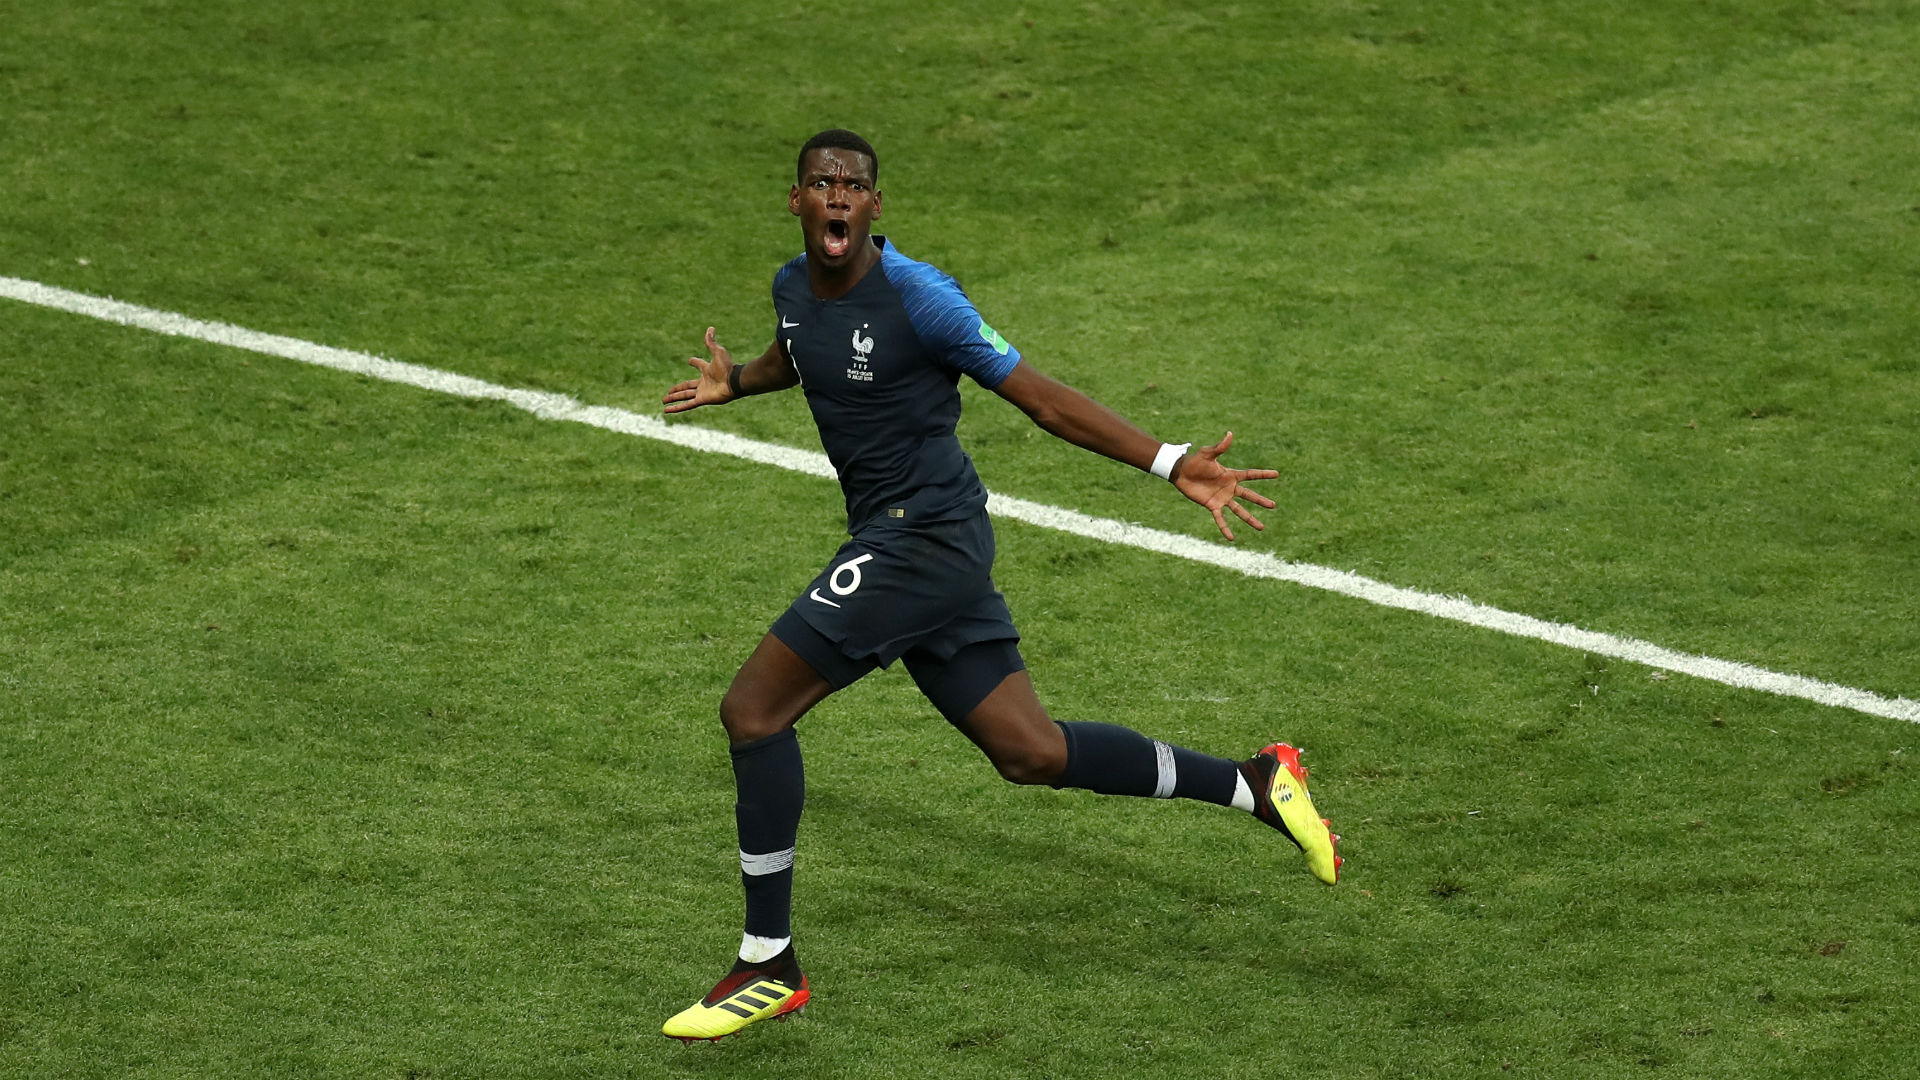 france croatia - paul pogba - world cup final - 15072018